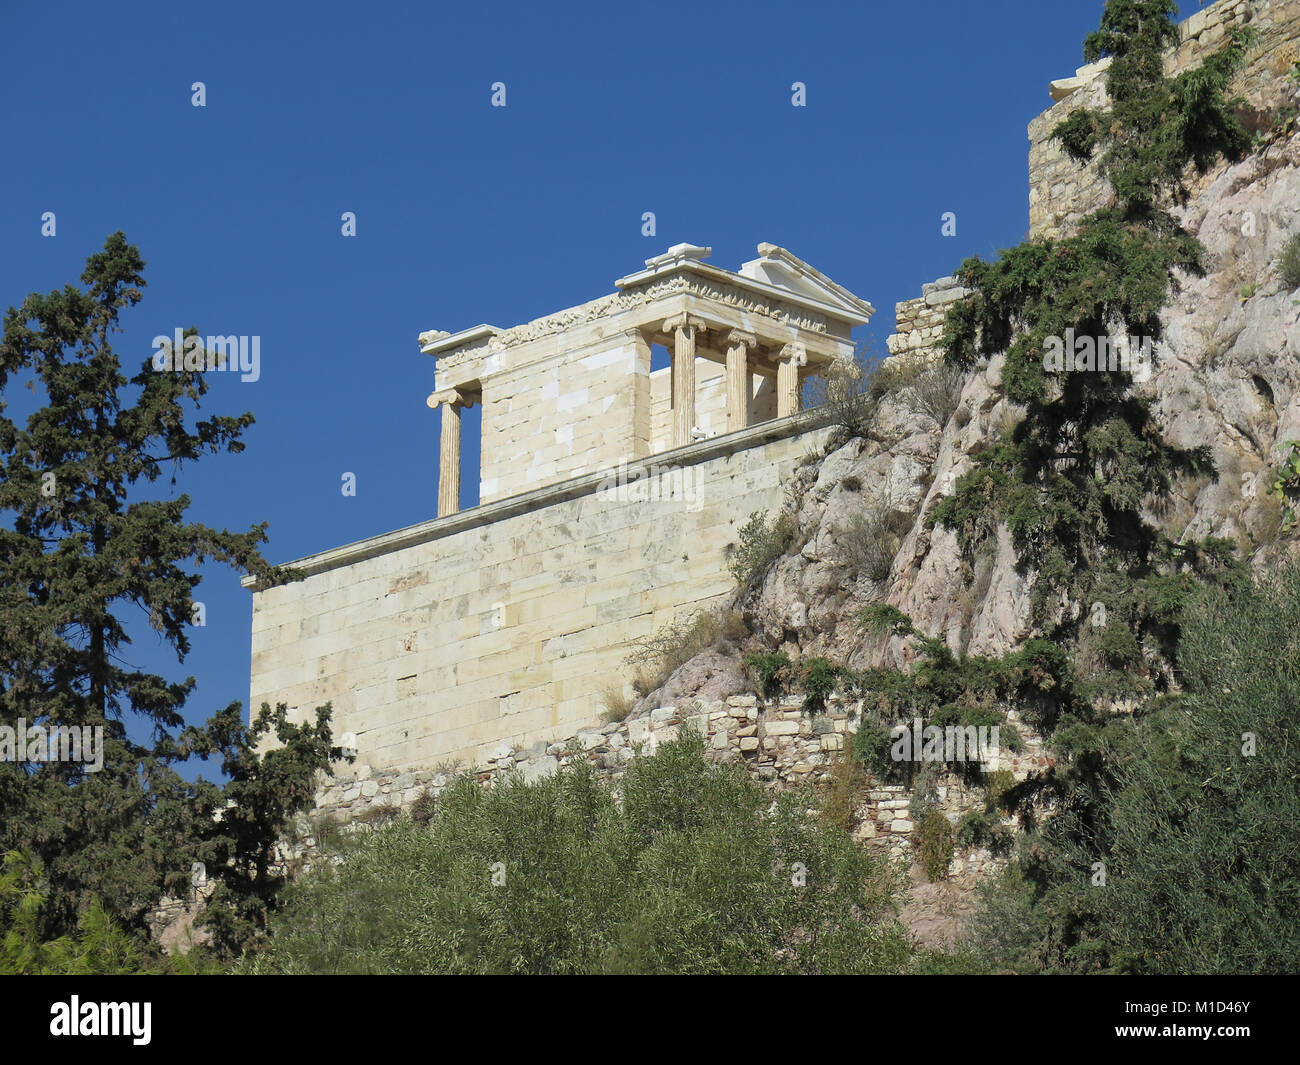 Niketempel, Akropolis, Athen, Griechenland - Stock Image